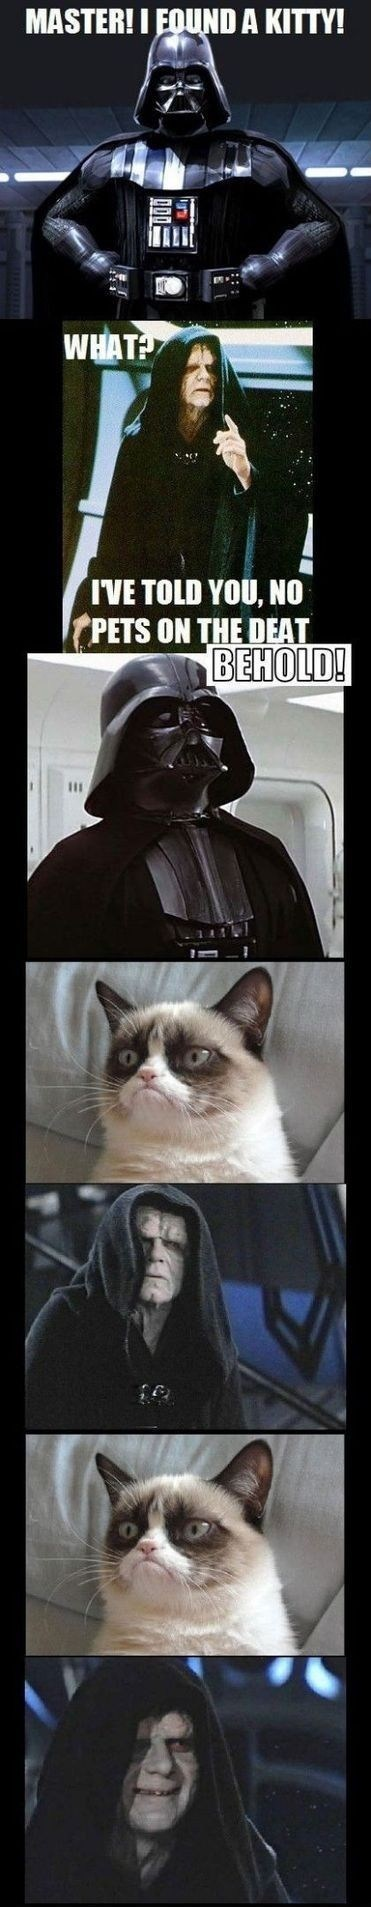 star wars,Movie,Grumpy Cat,tard,darth vader